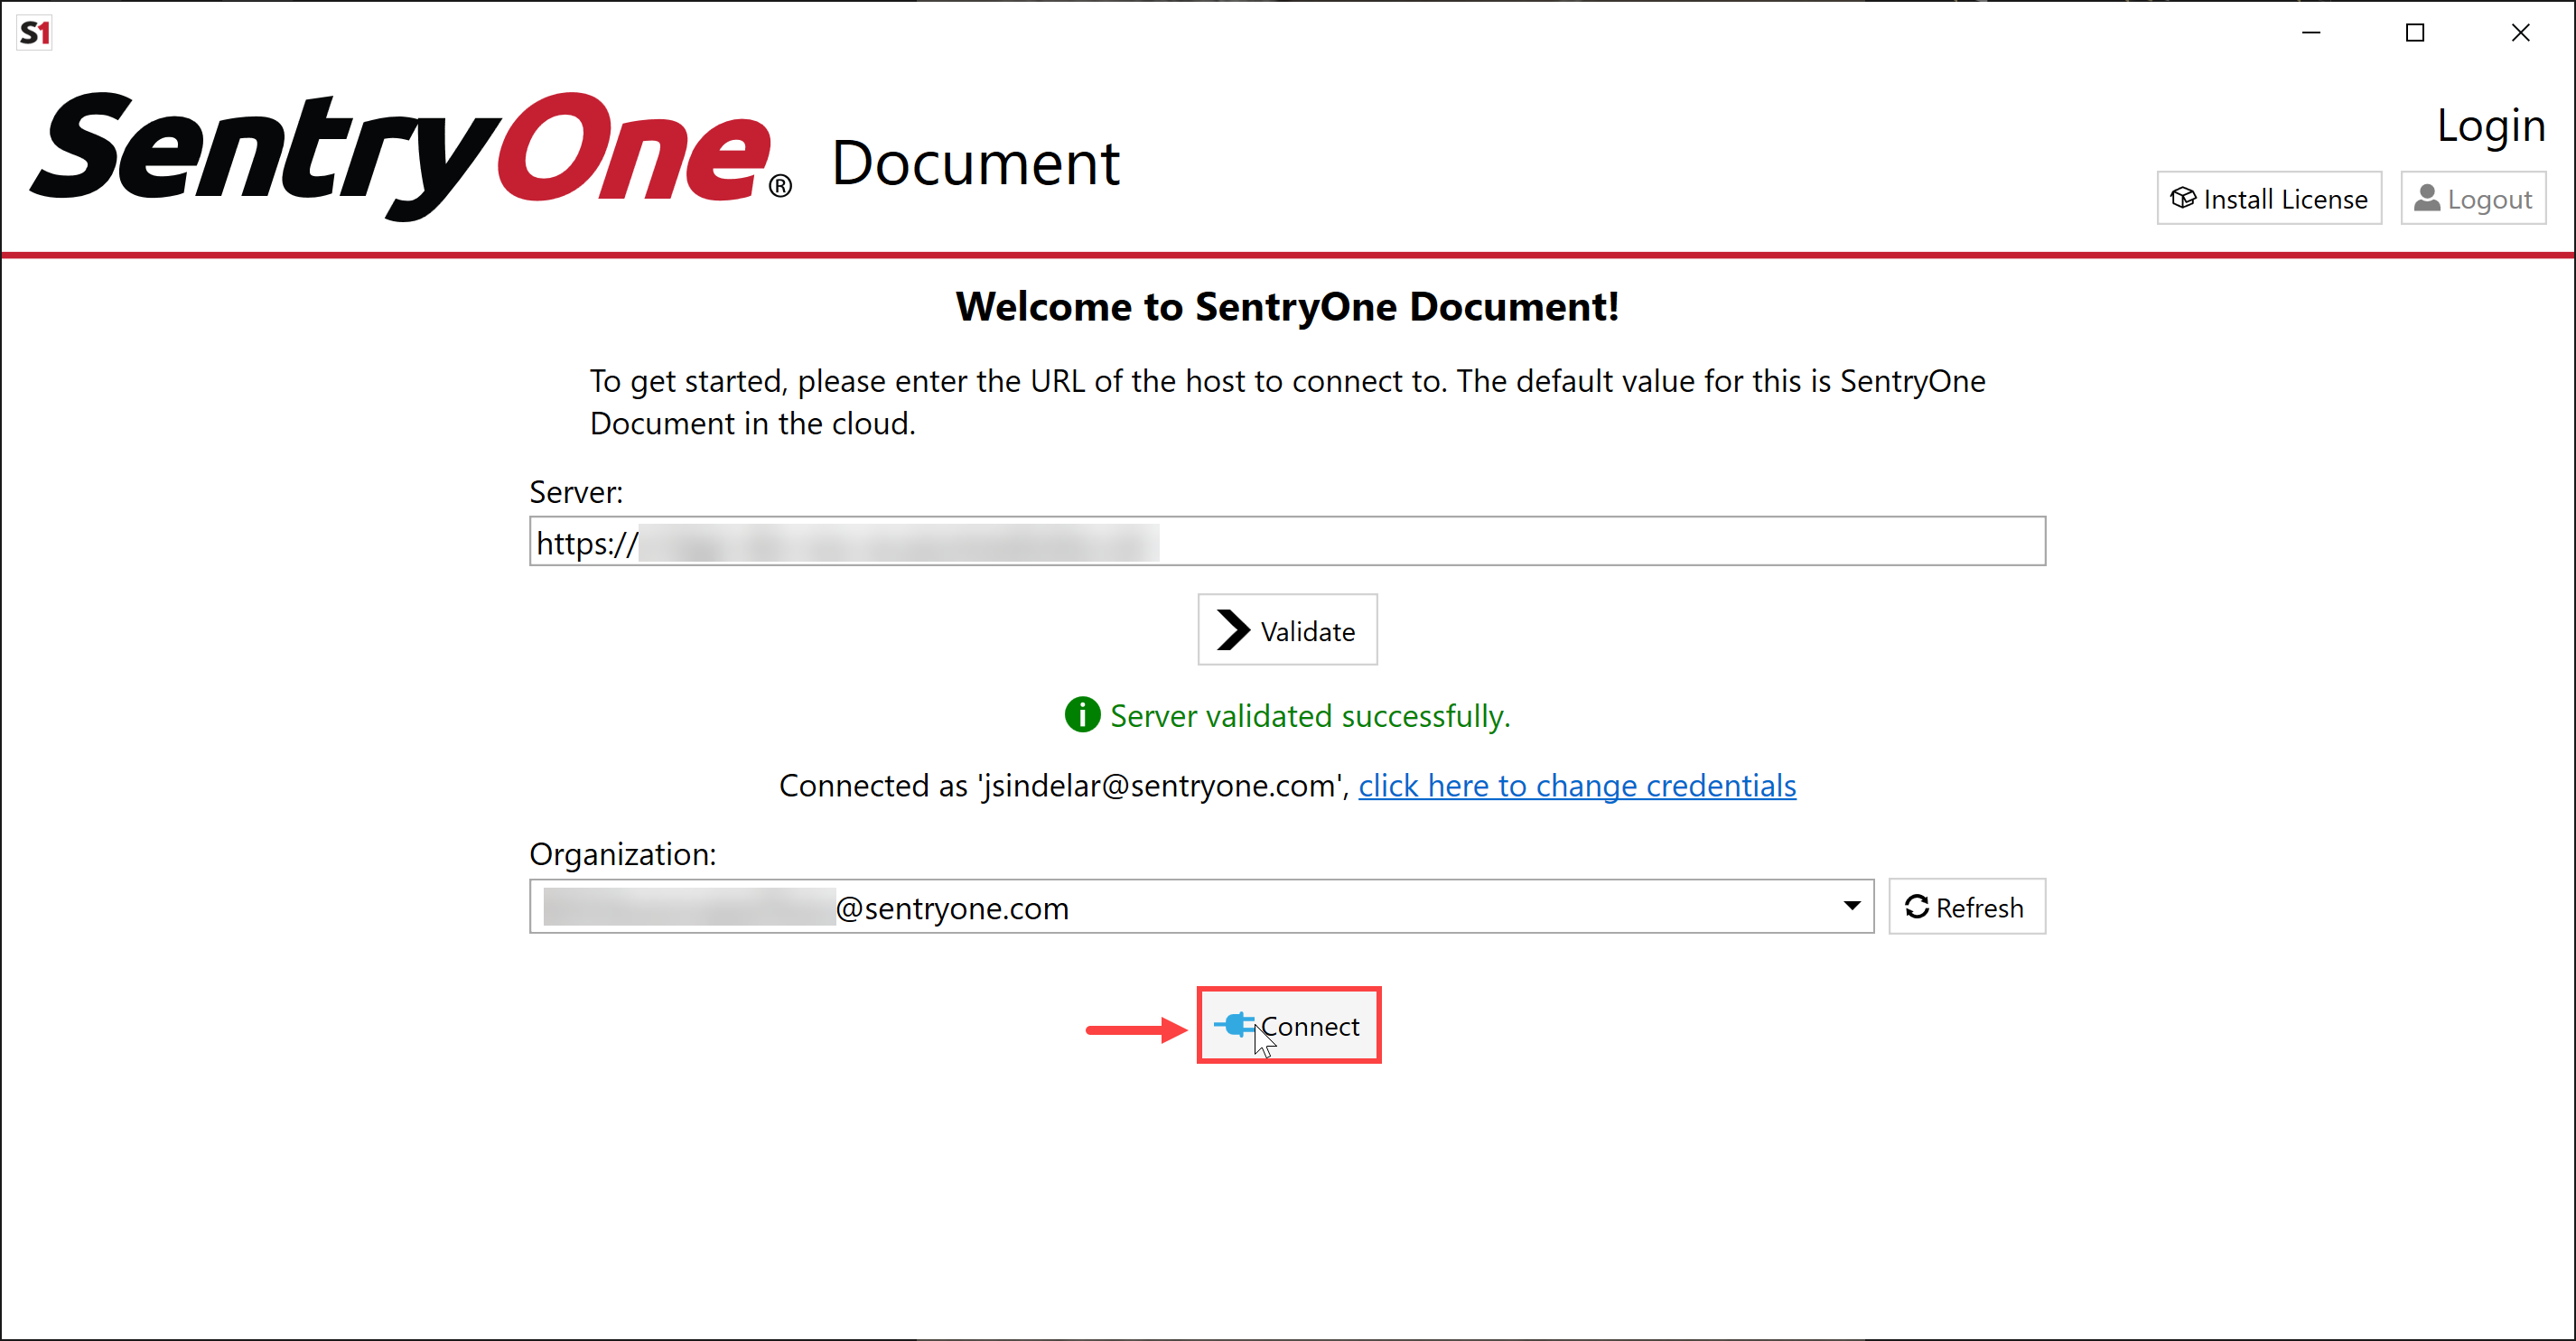 SentryOne Document Solution Configuration Tool select Connect